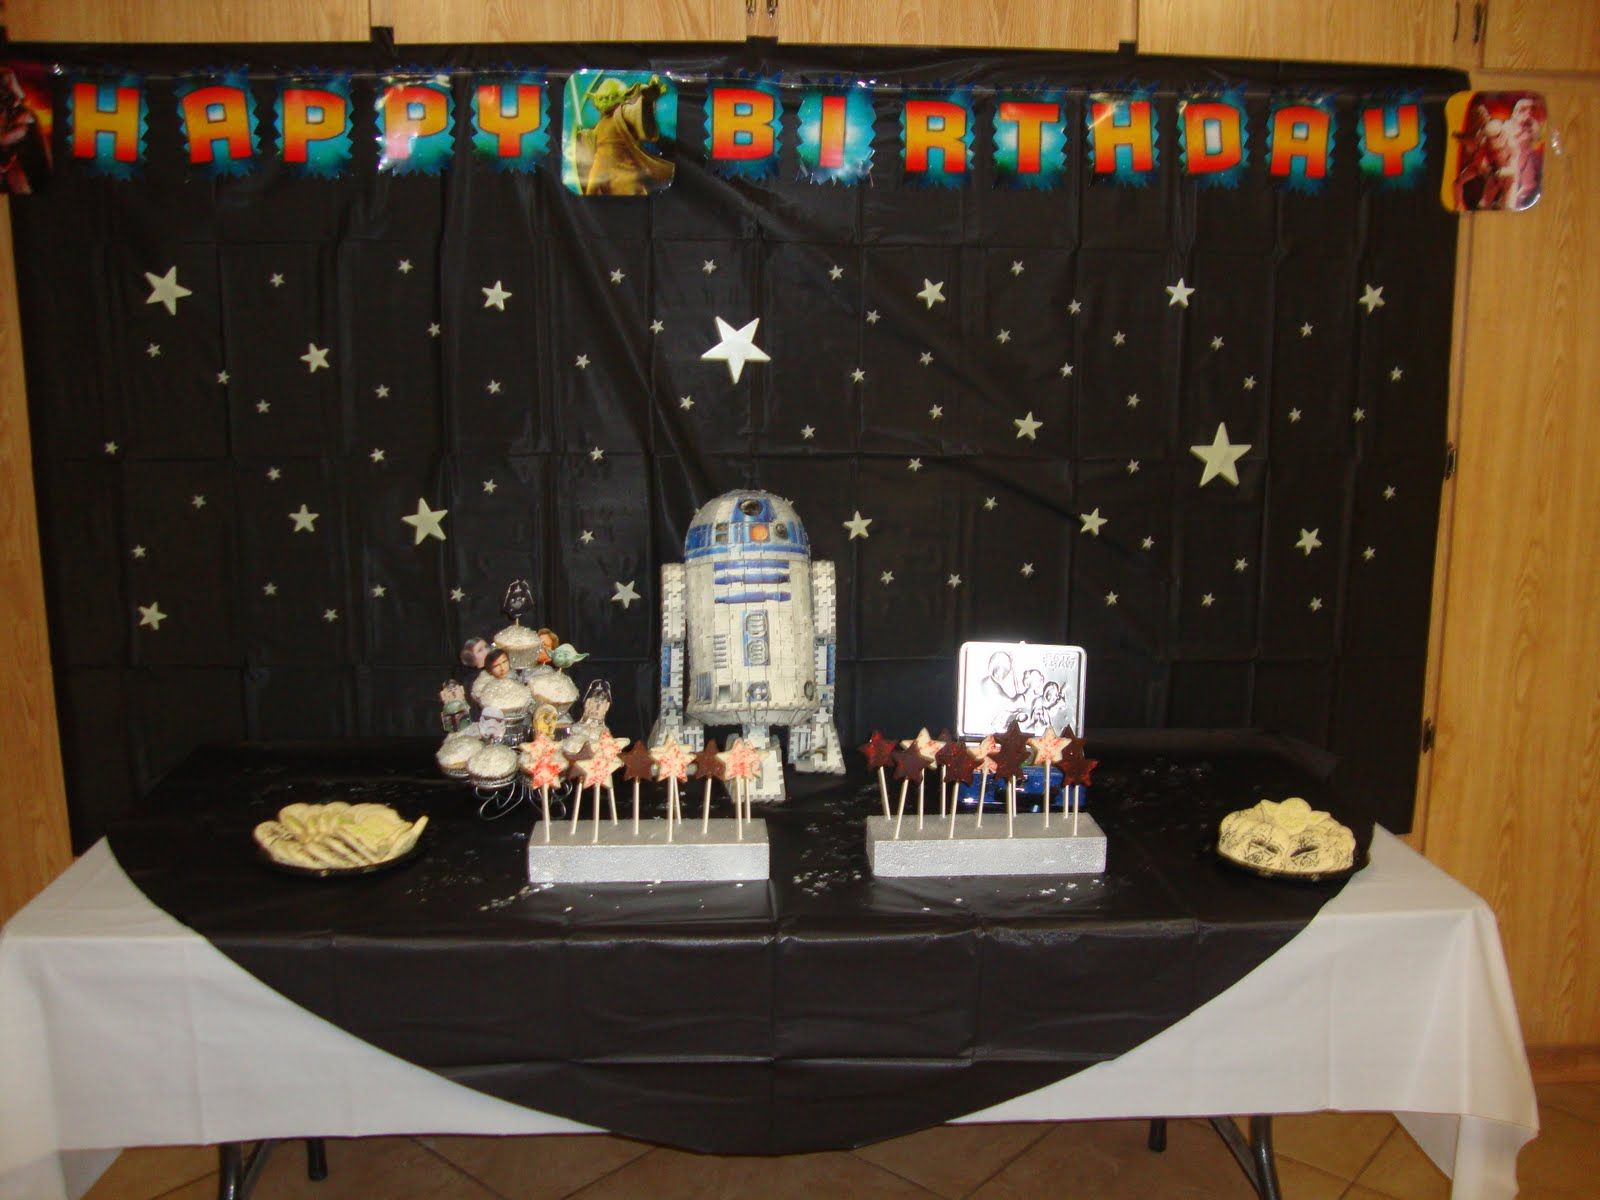 i like the black background with silver stars as a backdrop for pictures very cute party table centerpiecesparty - Star Wars Party Decorations